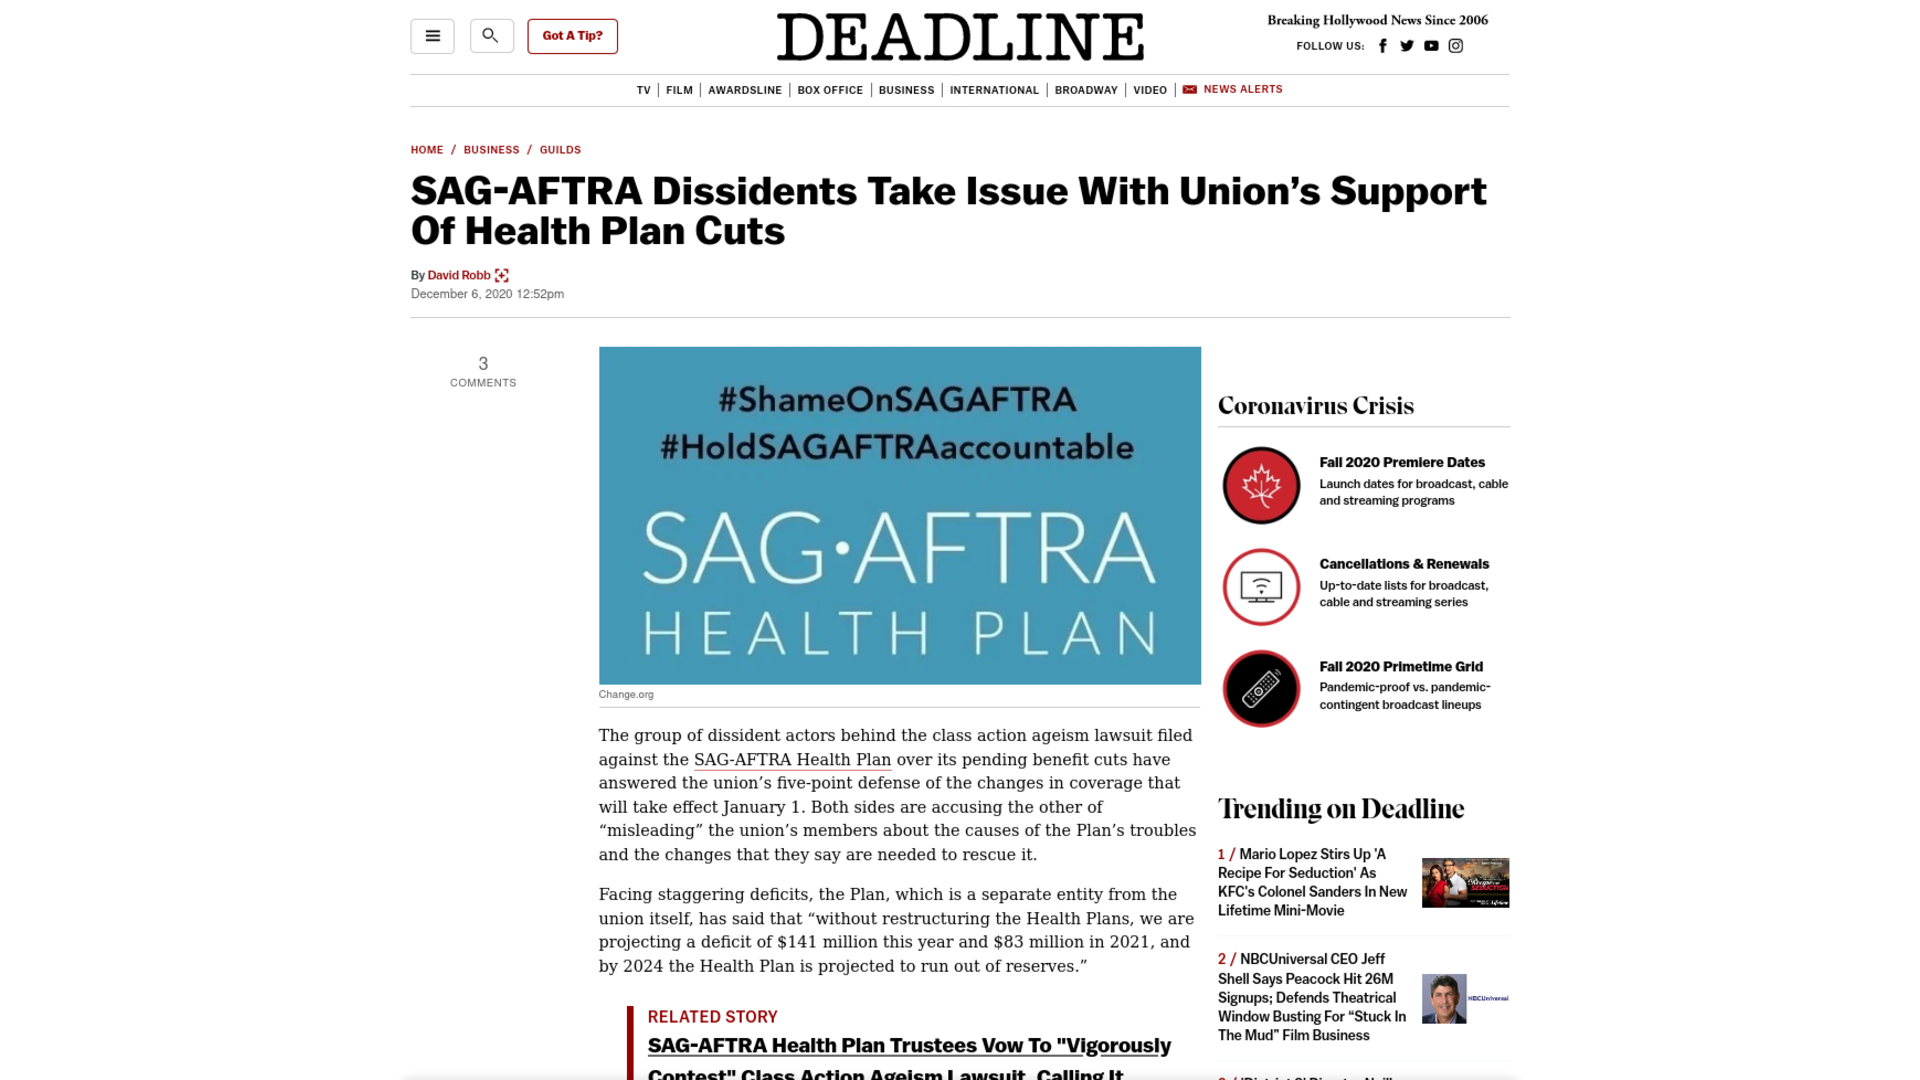 Fairness Rocks News SAG-AFTRA Dissidents Take Issue With Union's Support Of Health Plan Cuts